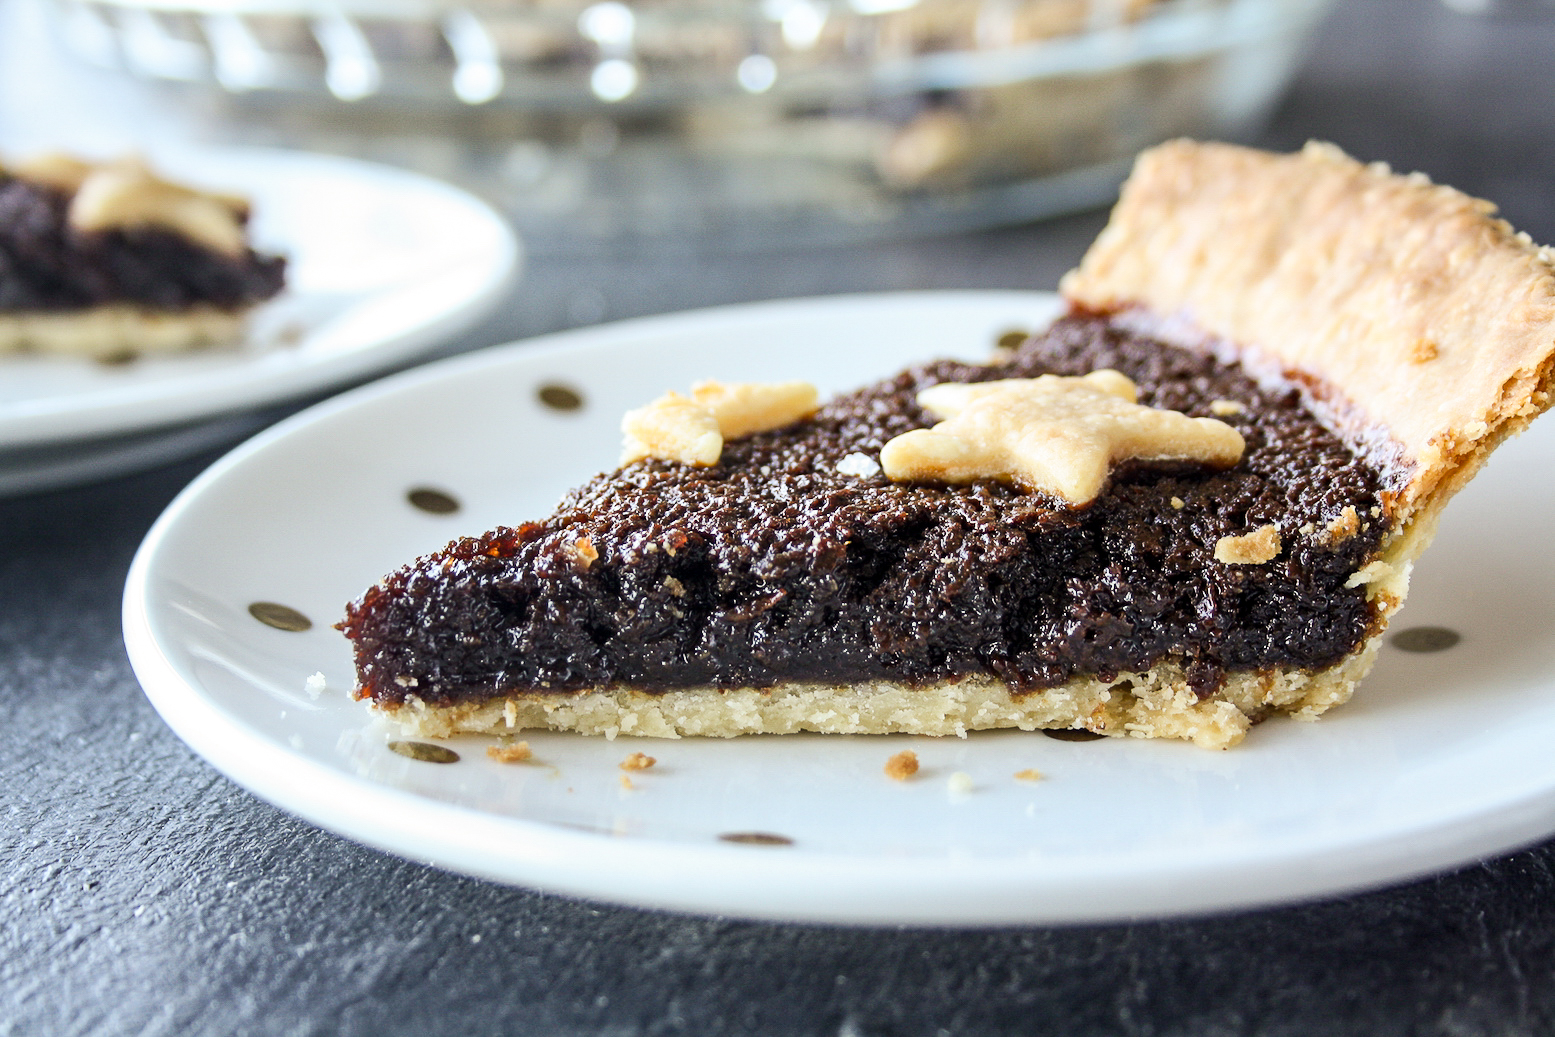 Dark molasses tart with ginger and cinnamon